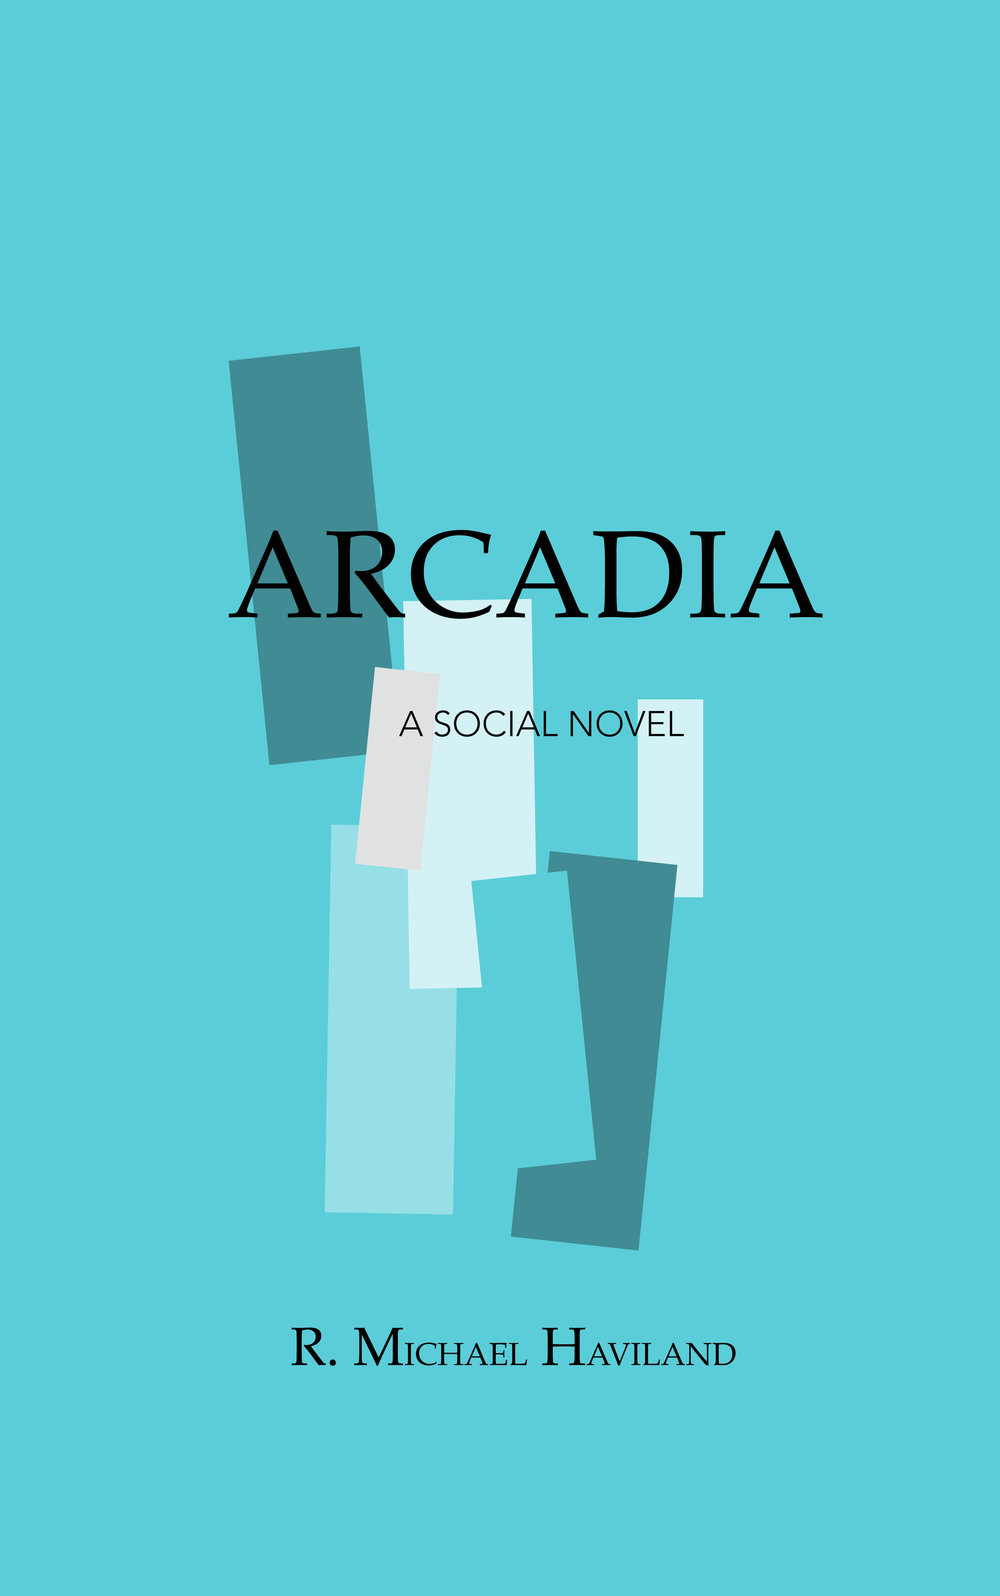 Arcadia_eBook_Cover_v1.jpg